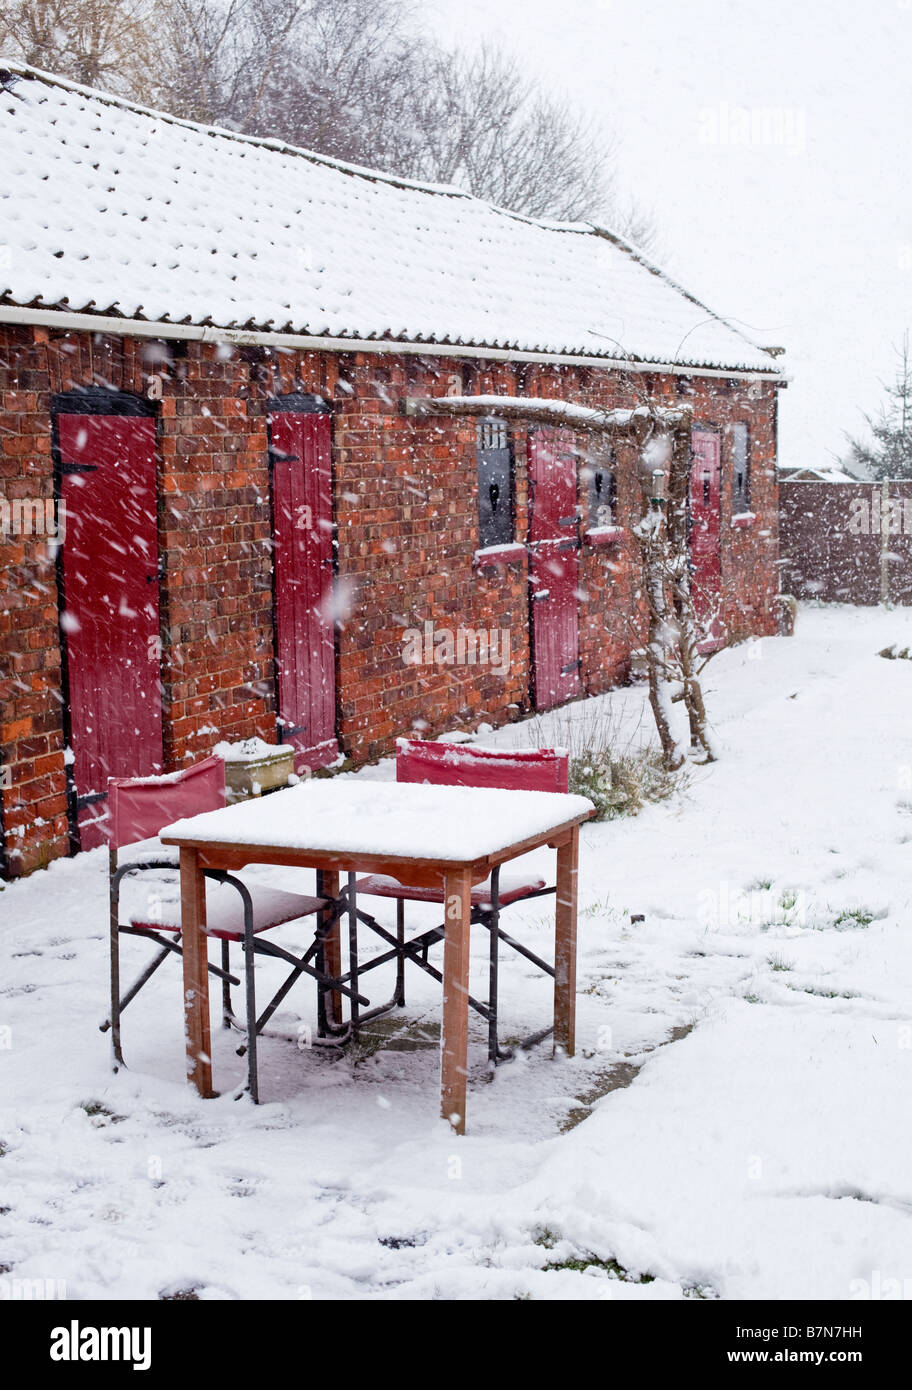 Garden table and chairs covered in fresh winter snow - Stock Image